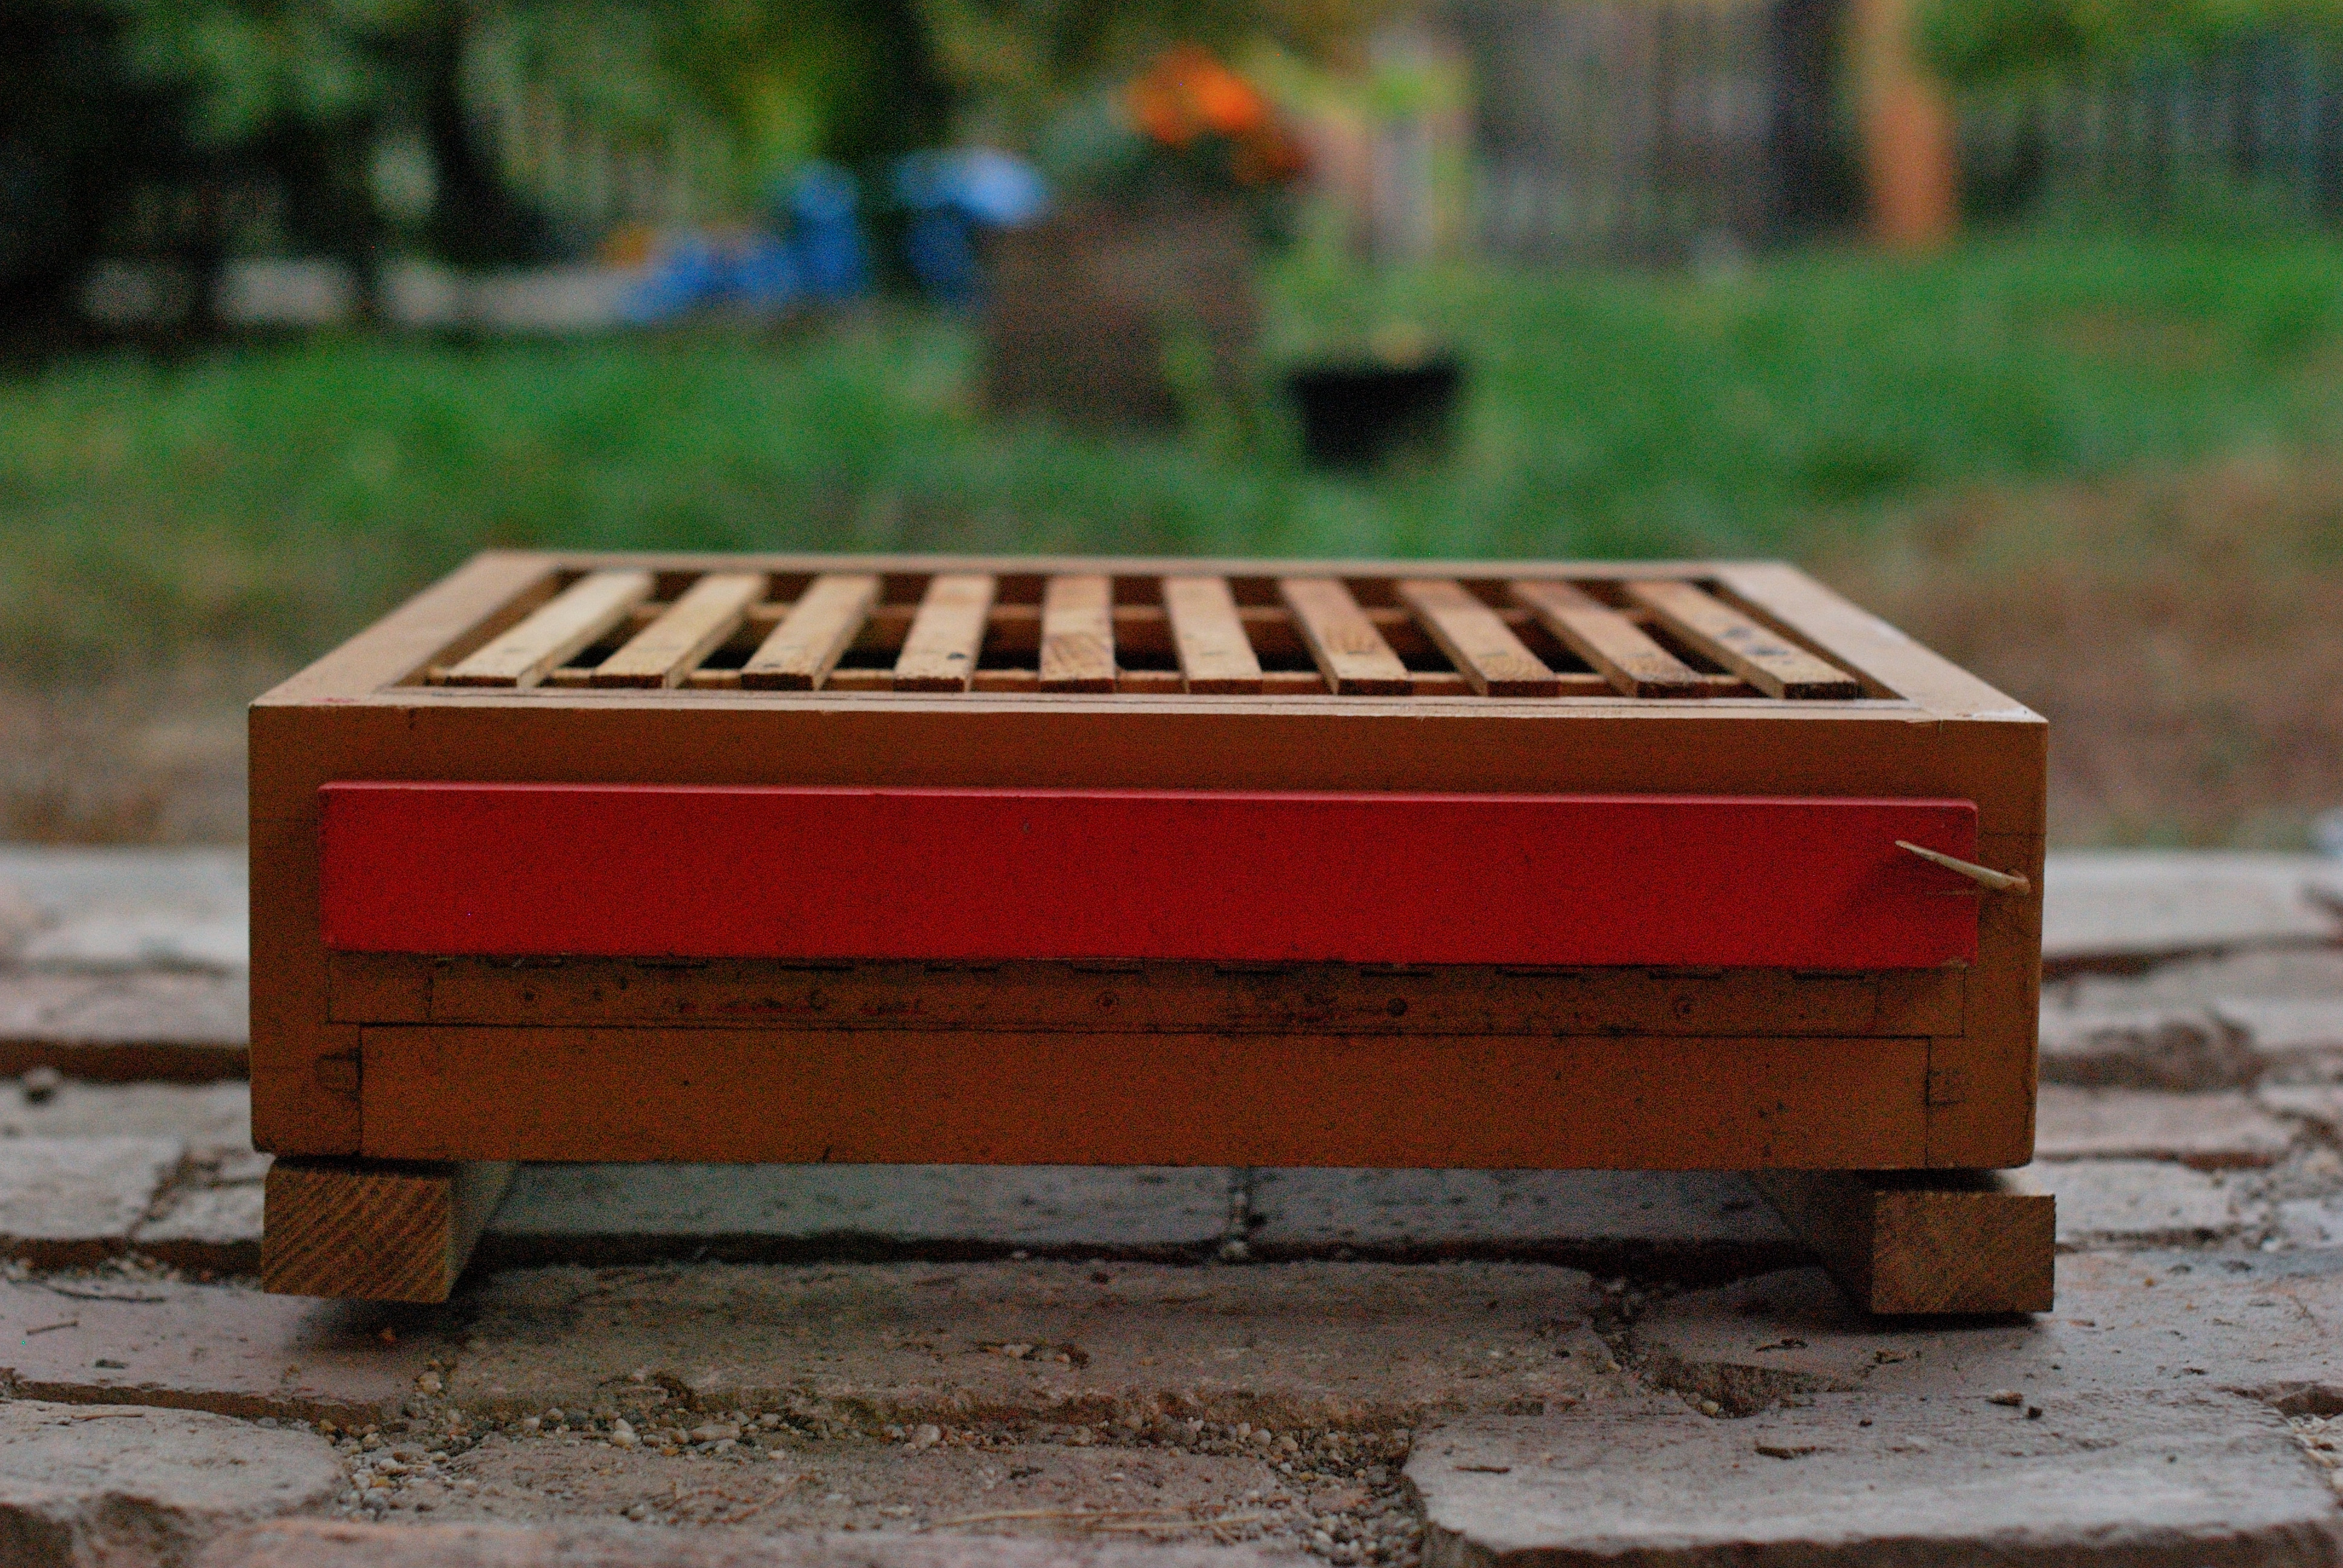 Bee Hive weight monitoring